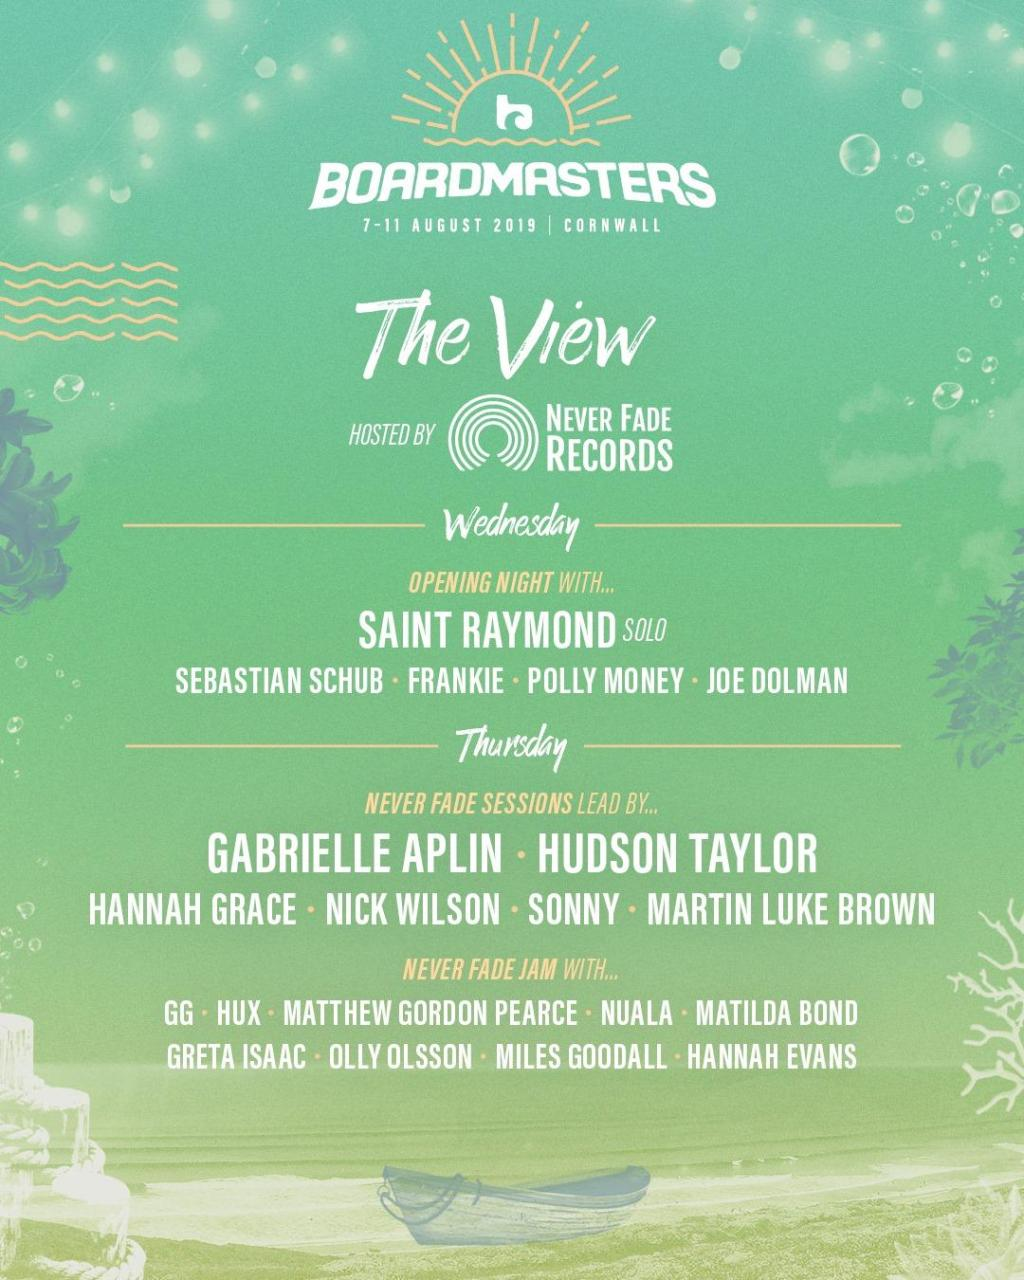 Boardmasters Festival news: THE VIEW hosted by NEVER FADE RECORDS